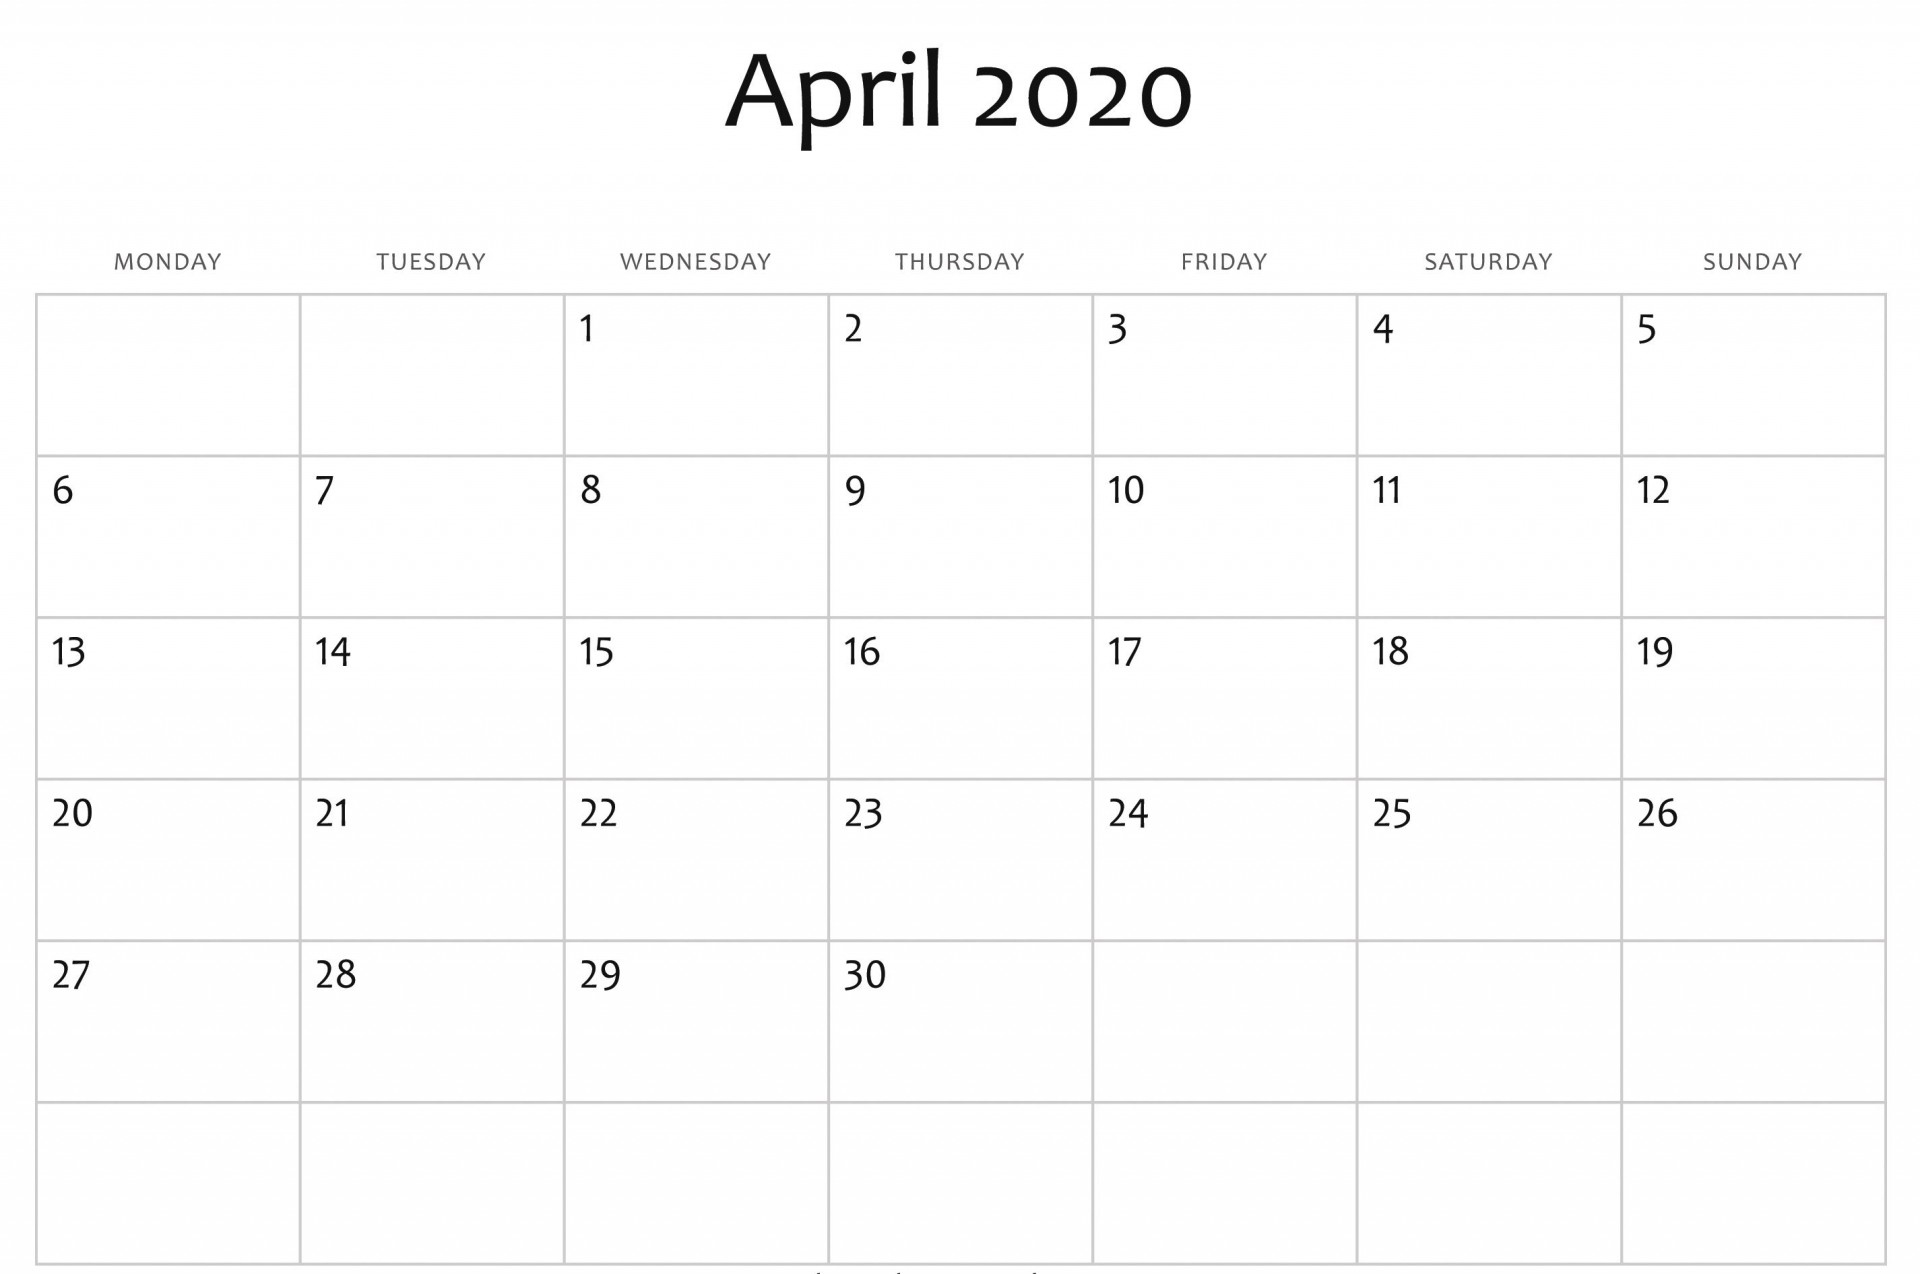 004 Fearsome Calendar 2020 Template Word Image  Monthly Doc Free Download1920